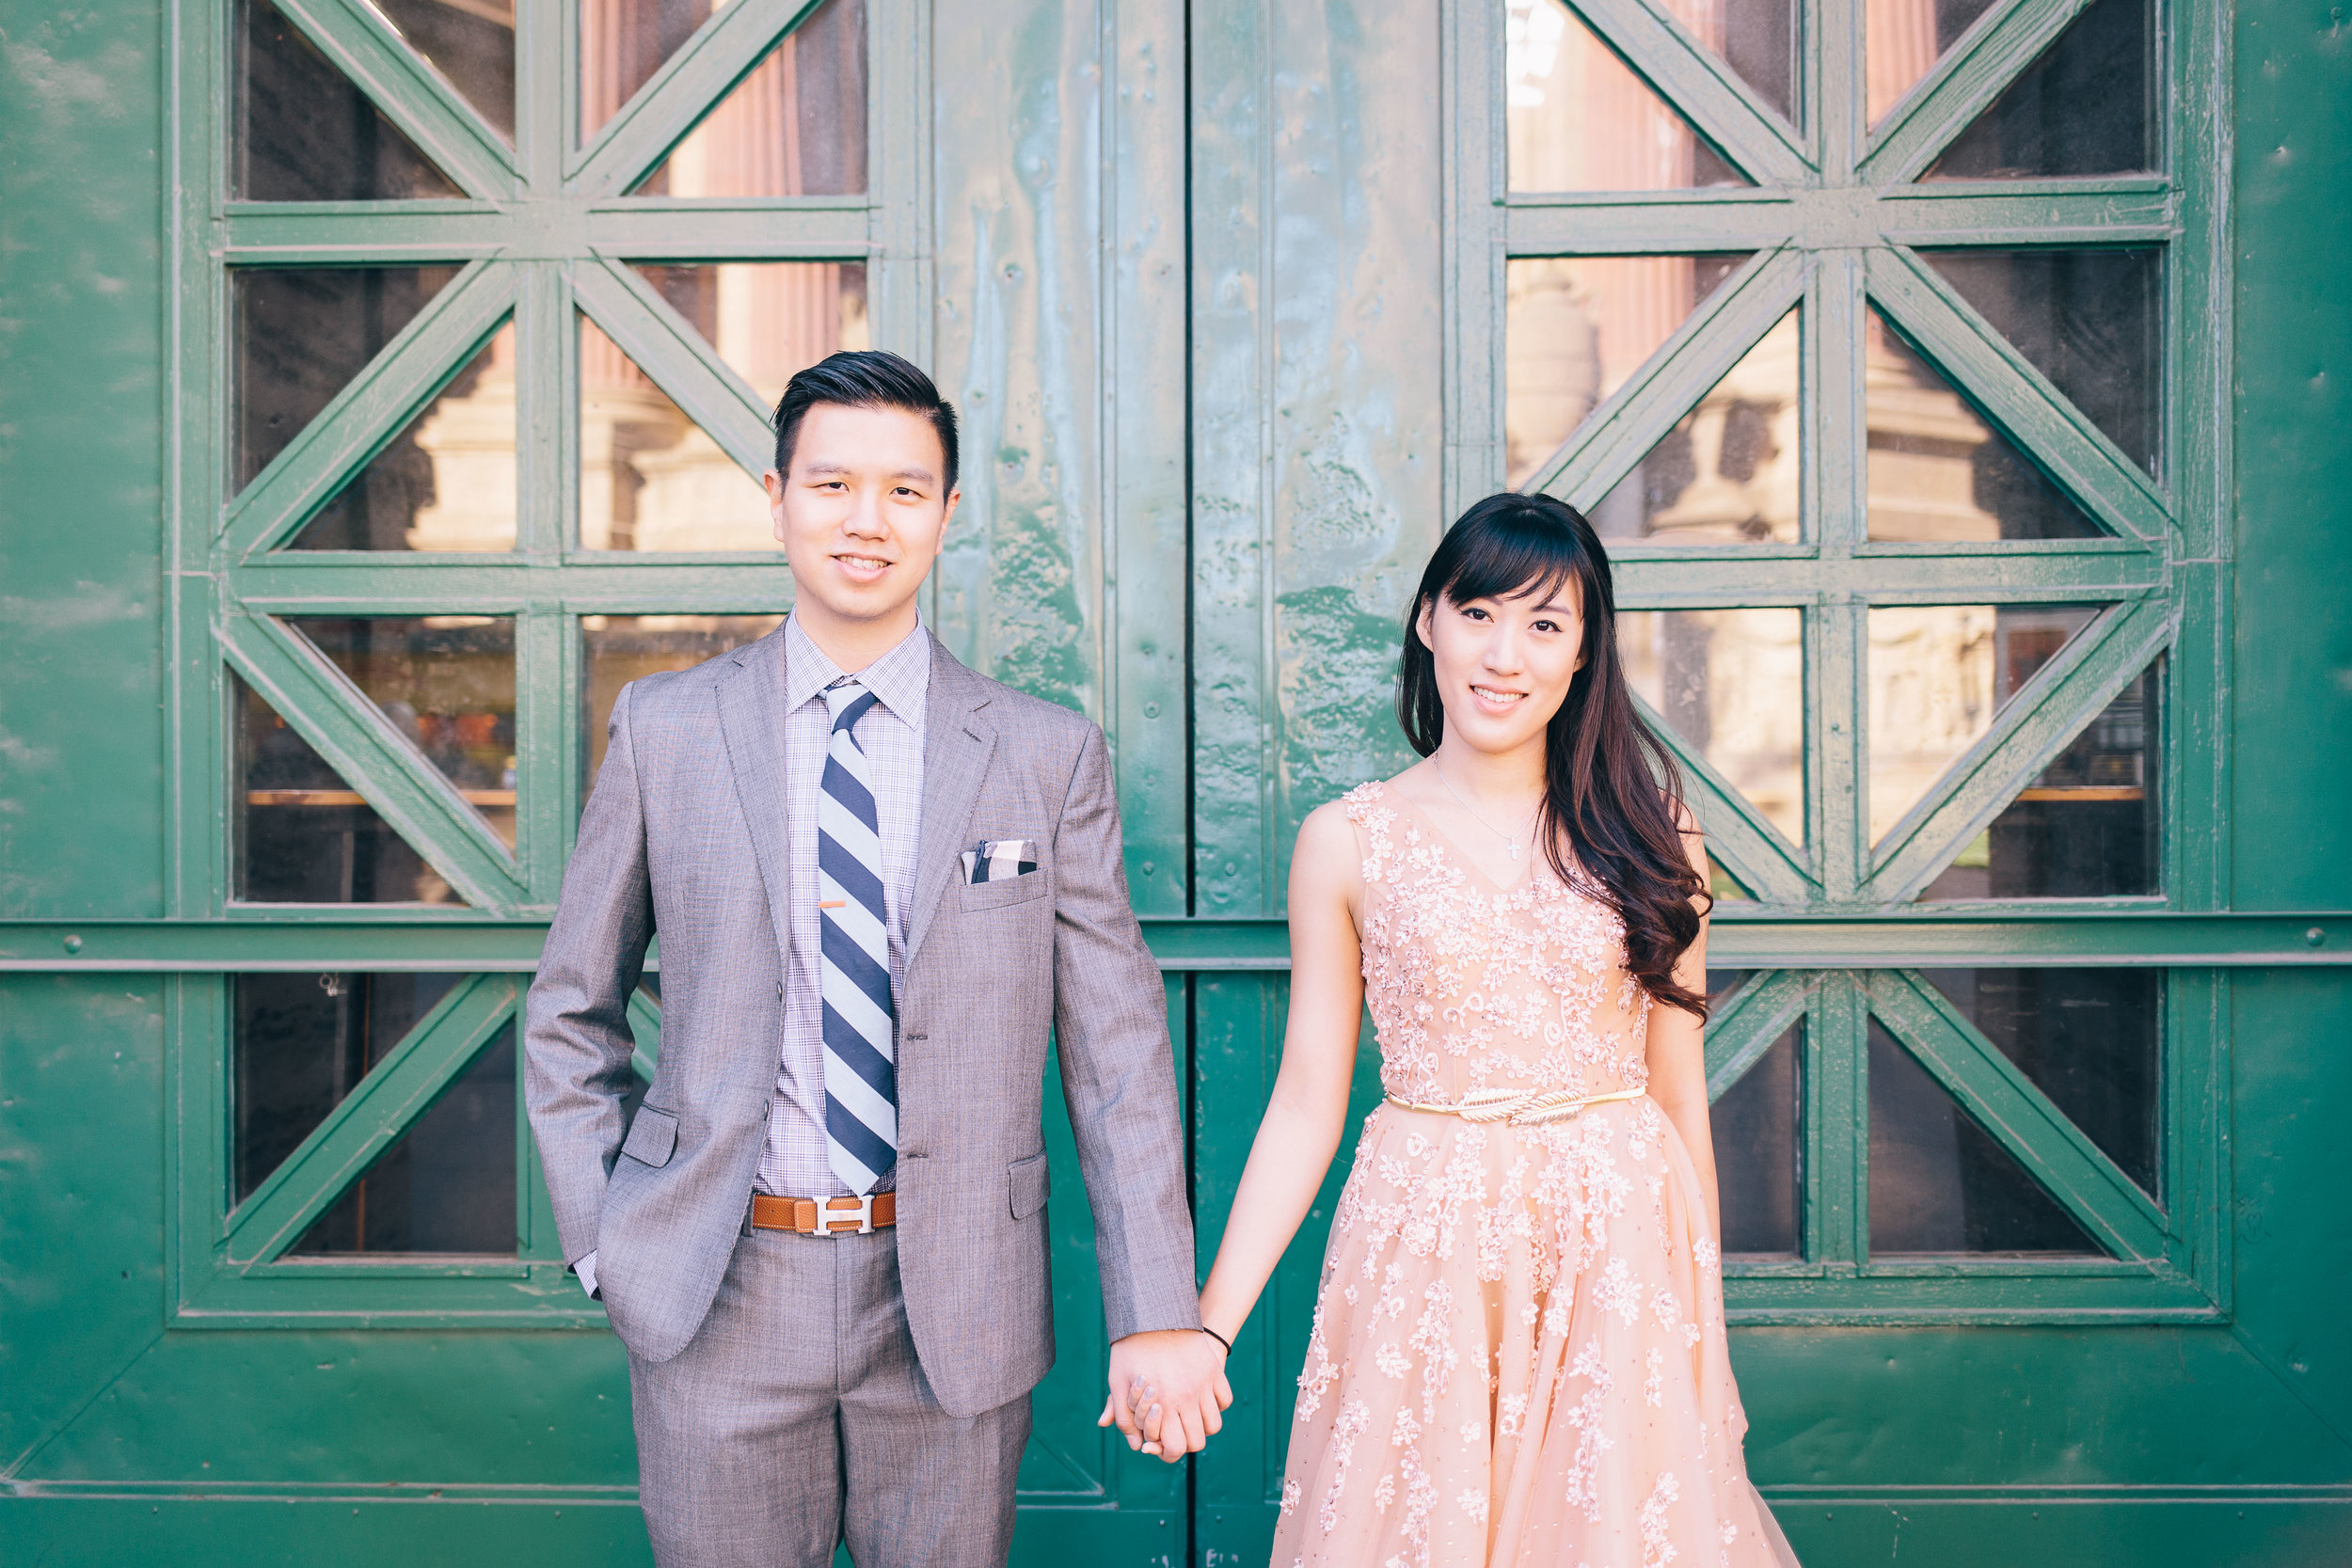 Pre-Wedding Photos in San Francisco by JBJ Pictures Pre-Wedding Photographer, Engagement Session and Wedding Photography in Napa, Sonoma, SF Bay Area (5).jpg